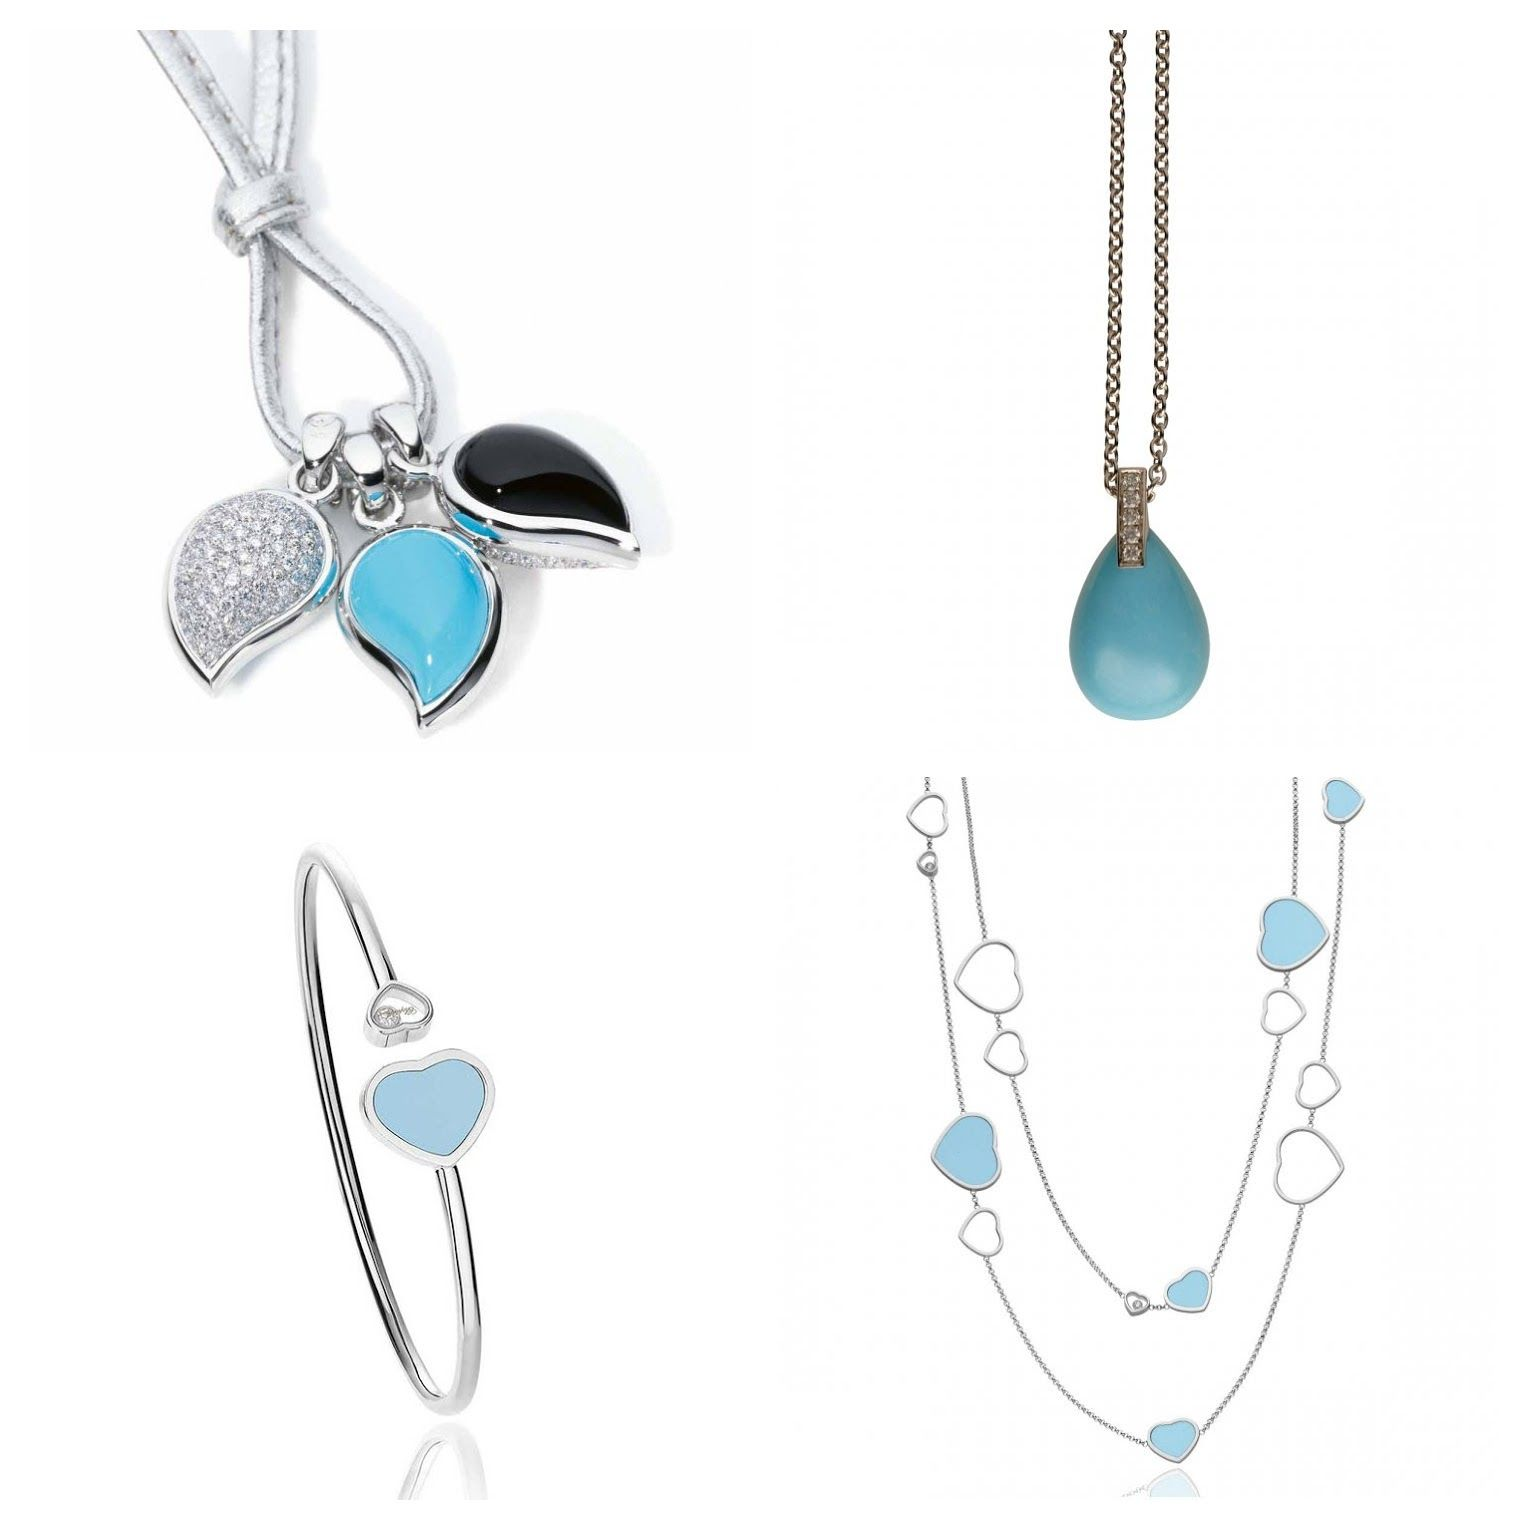 Chopard Happy Hearts Turquoise bracelet.jpg 760x0 q80 crop scale subsampling 2 upscale false COLLAGE